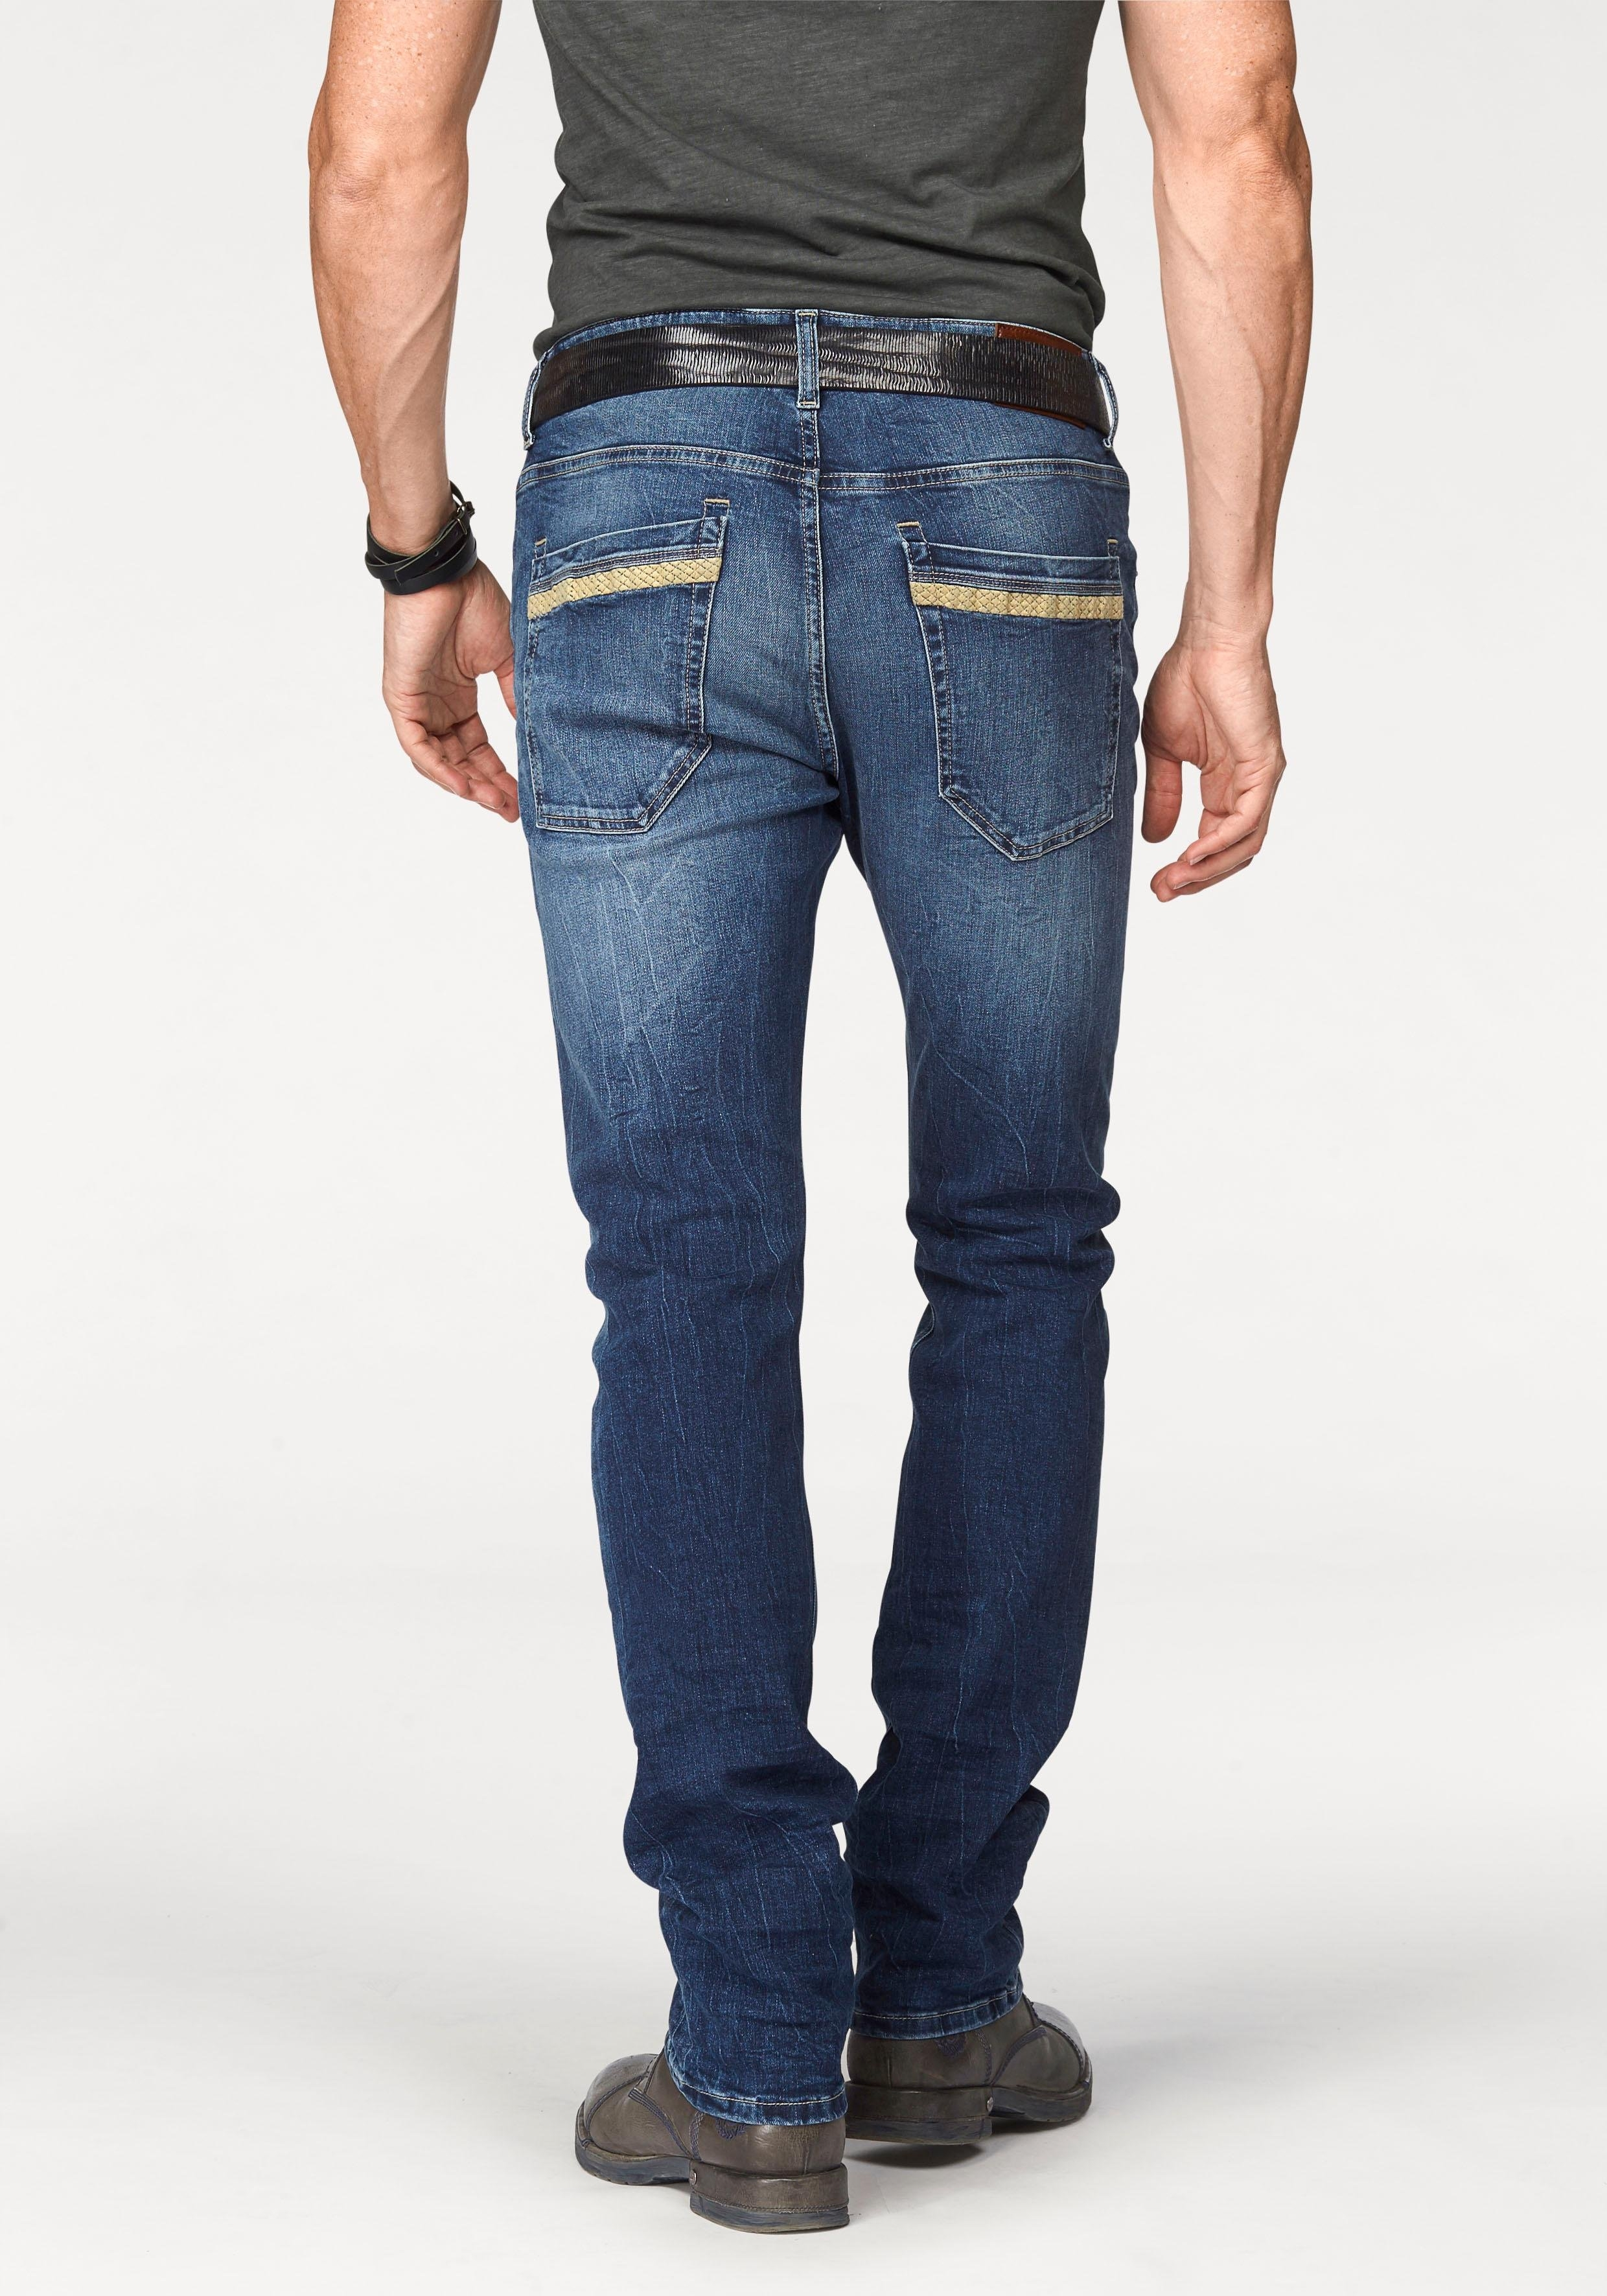 bruno banani straight-jeans »Liam (Stretch)« goedkoop op otto.nl kopen